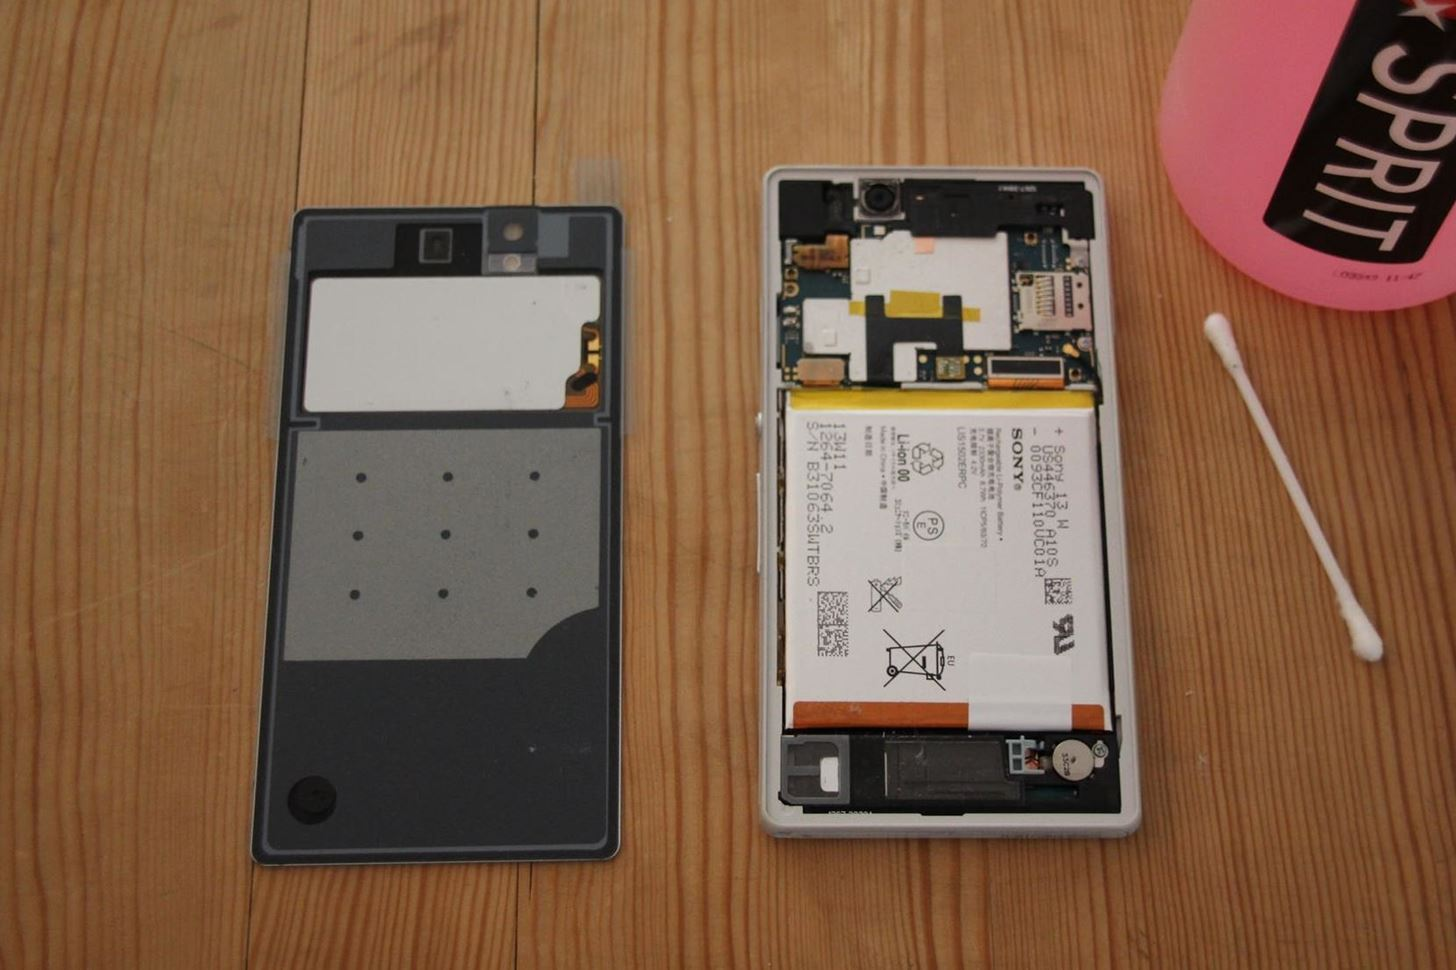 Diy Repair How To Fix Your Broken Smartphone Like A Pro Speakers Circuit On Mobile Phones Free Cellphone Tutorials Slightly Disassembled Sony Xperia Z Image By Espen Klem Flickr